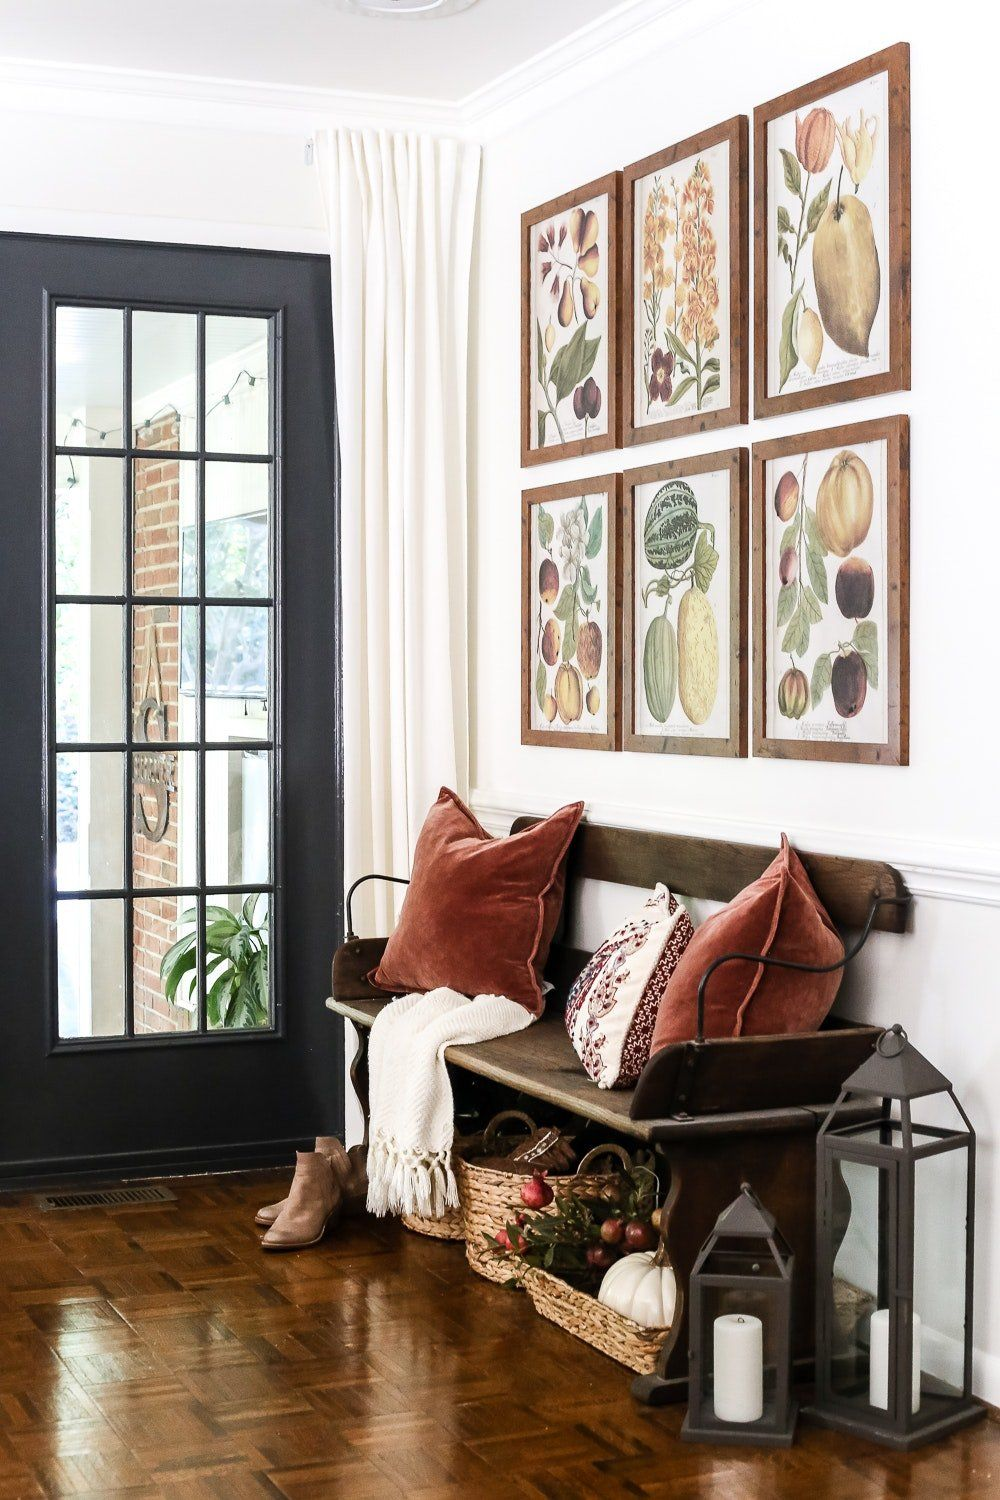 Modern hallway furniture ideas  No Porch Ideas to Decorate Your Entryway for Fall Instead  Homes